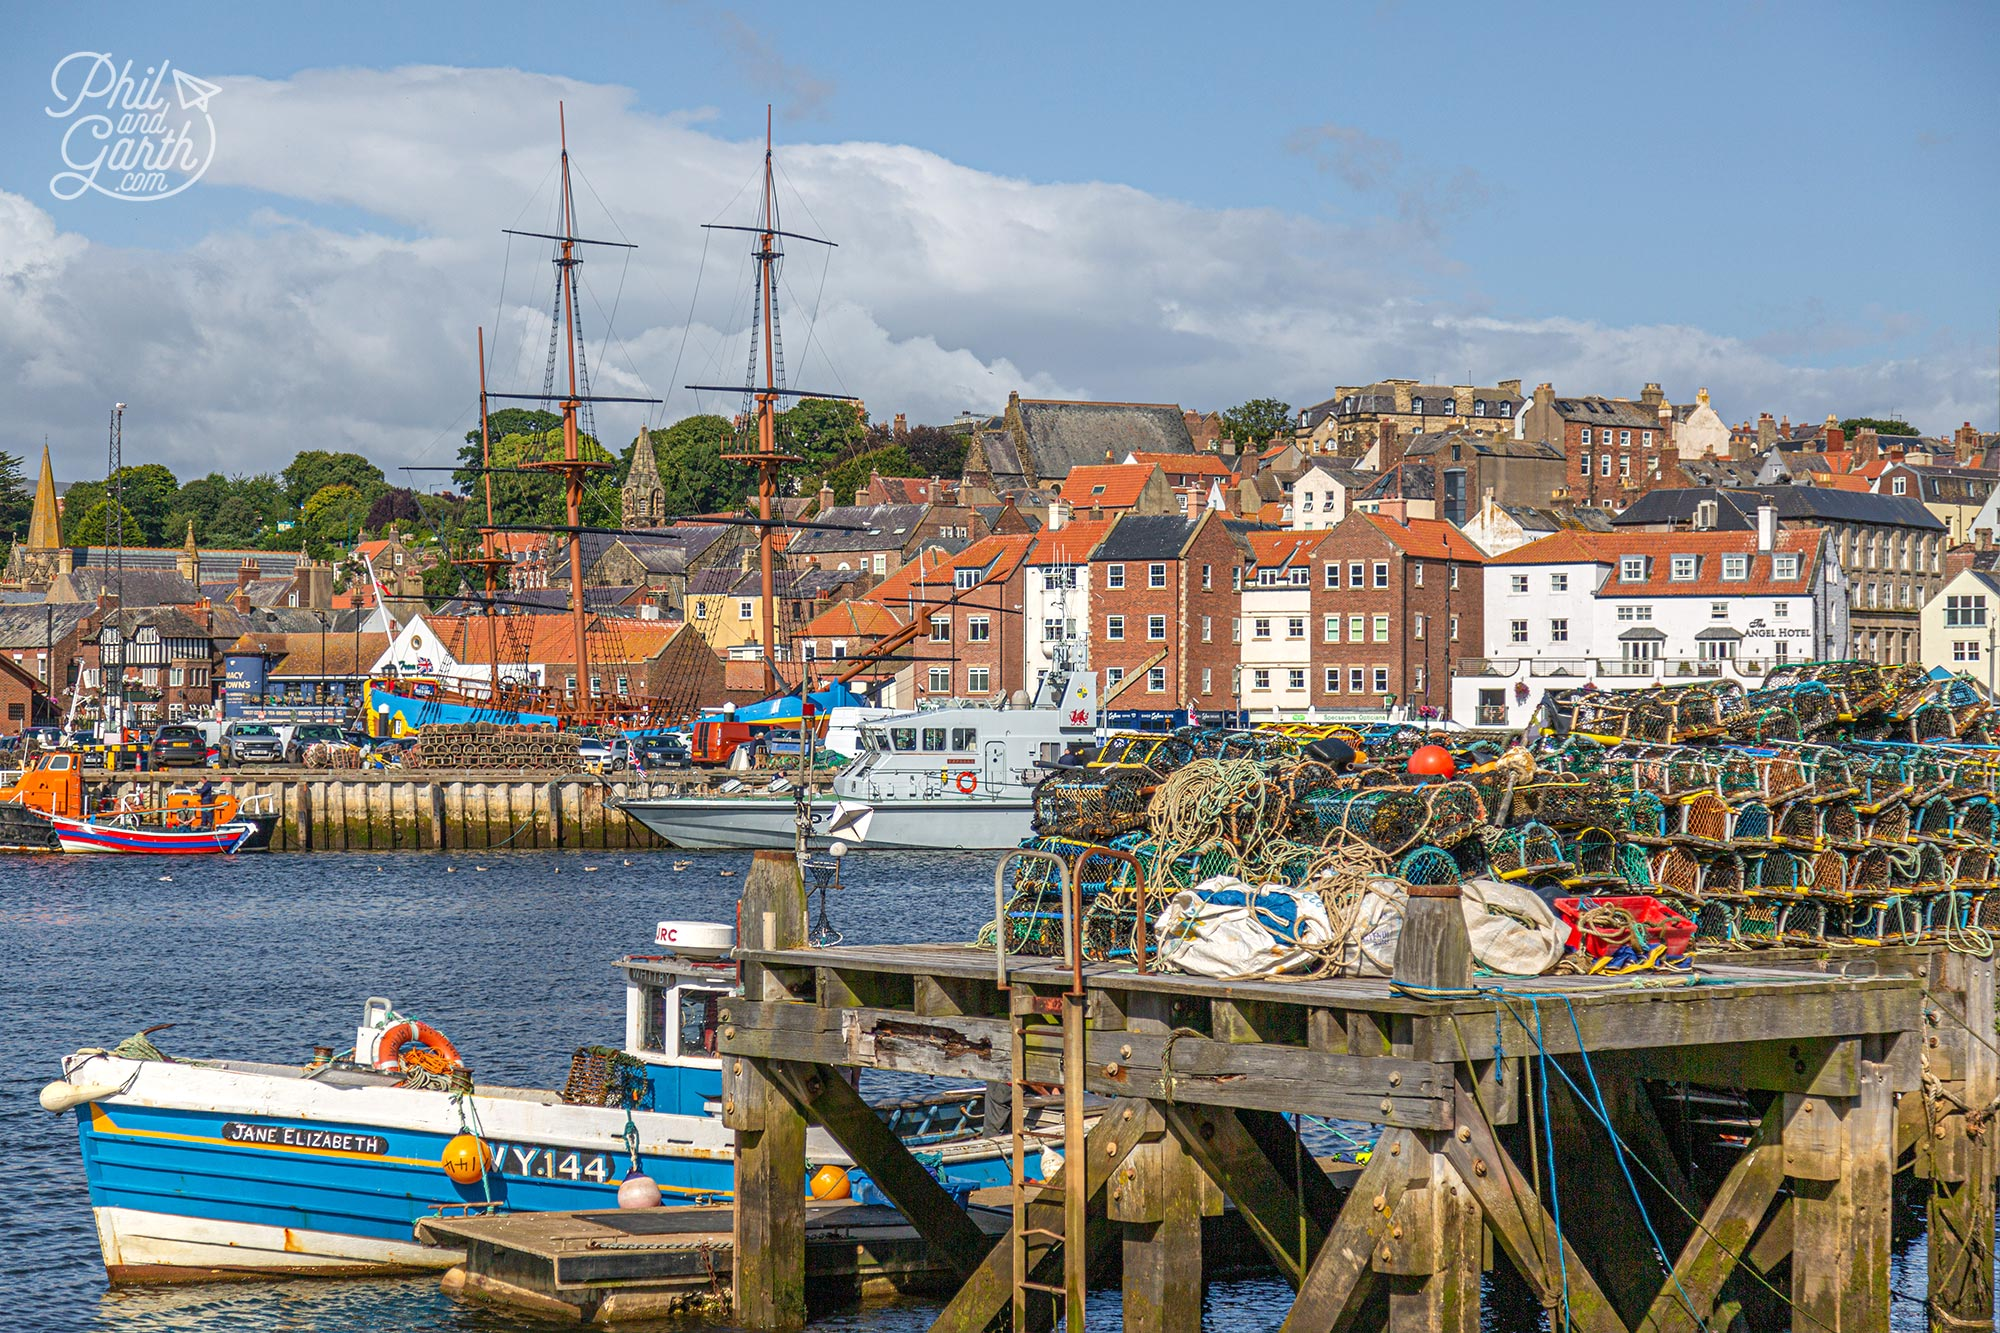 Whitby's bustling harbour is full of life - watch the fishing boats bring in their catch